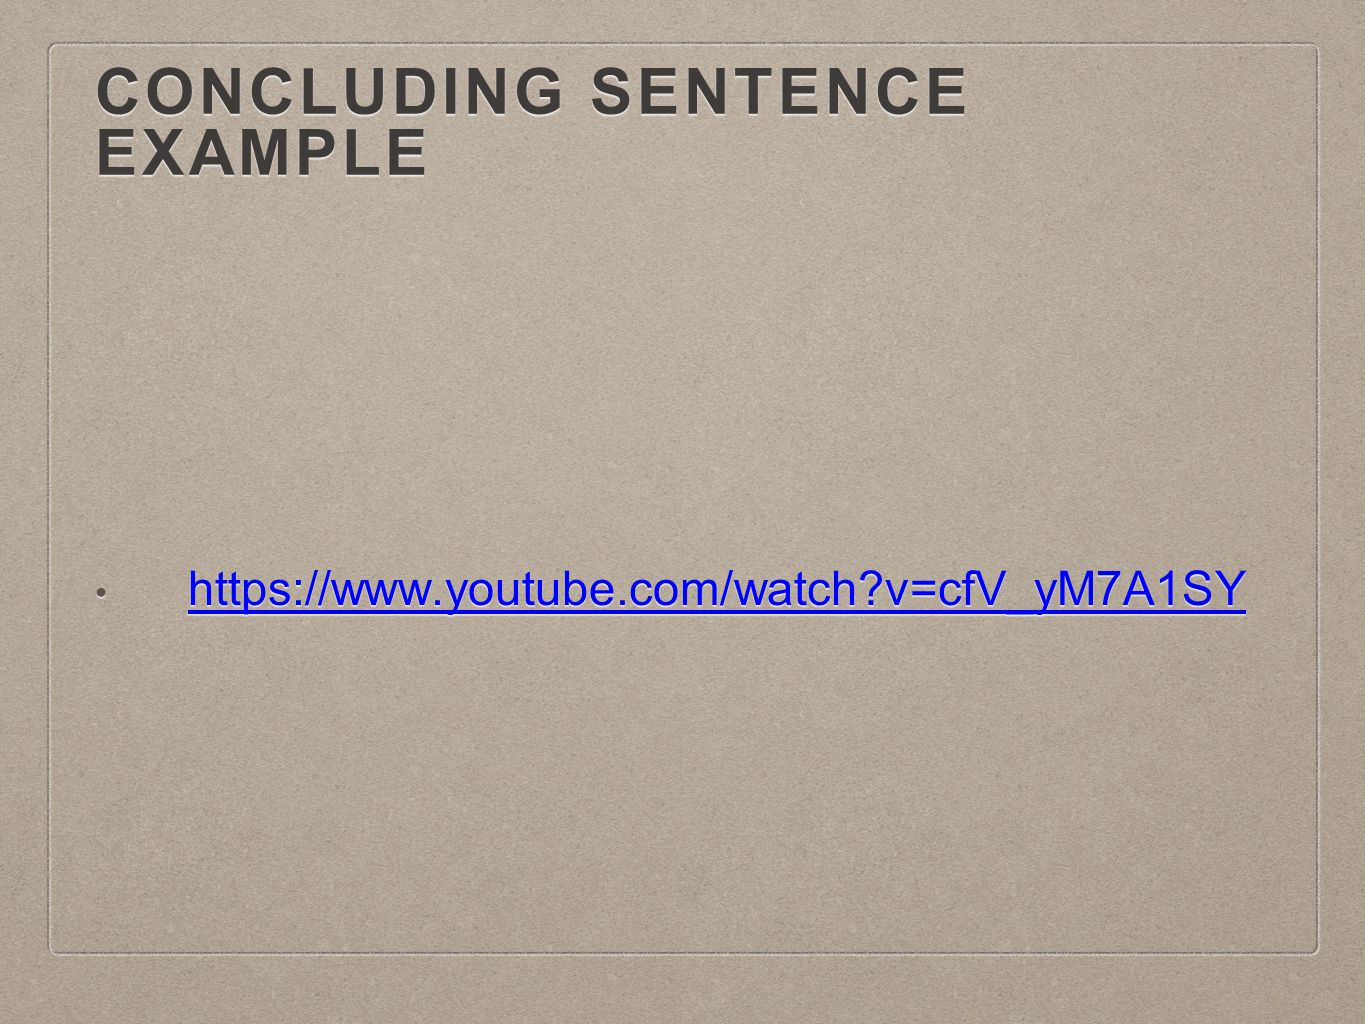 Concluding Sentence Example